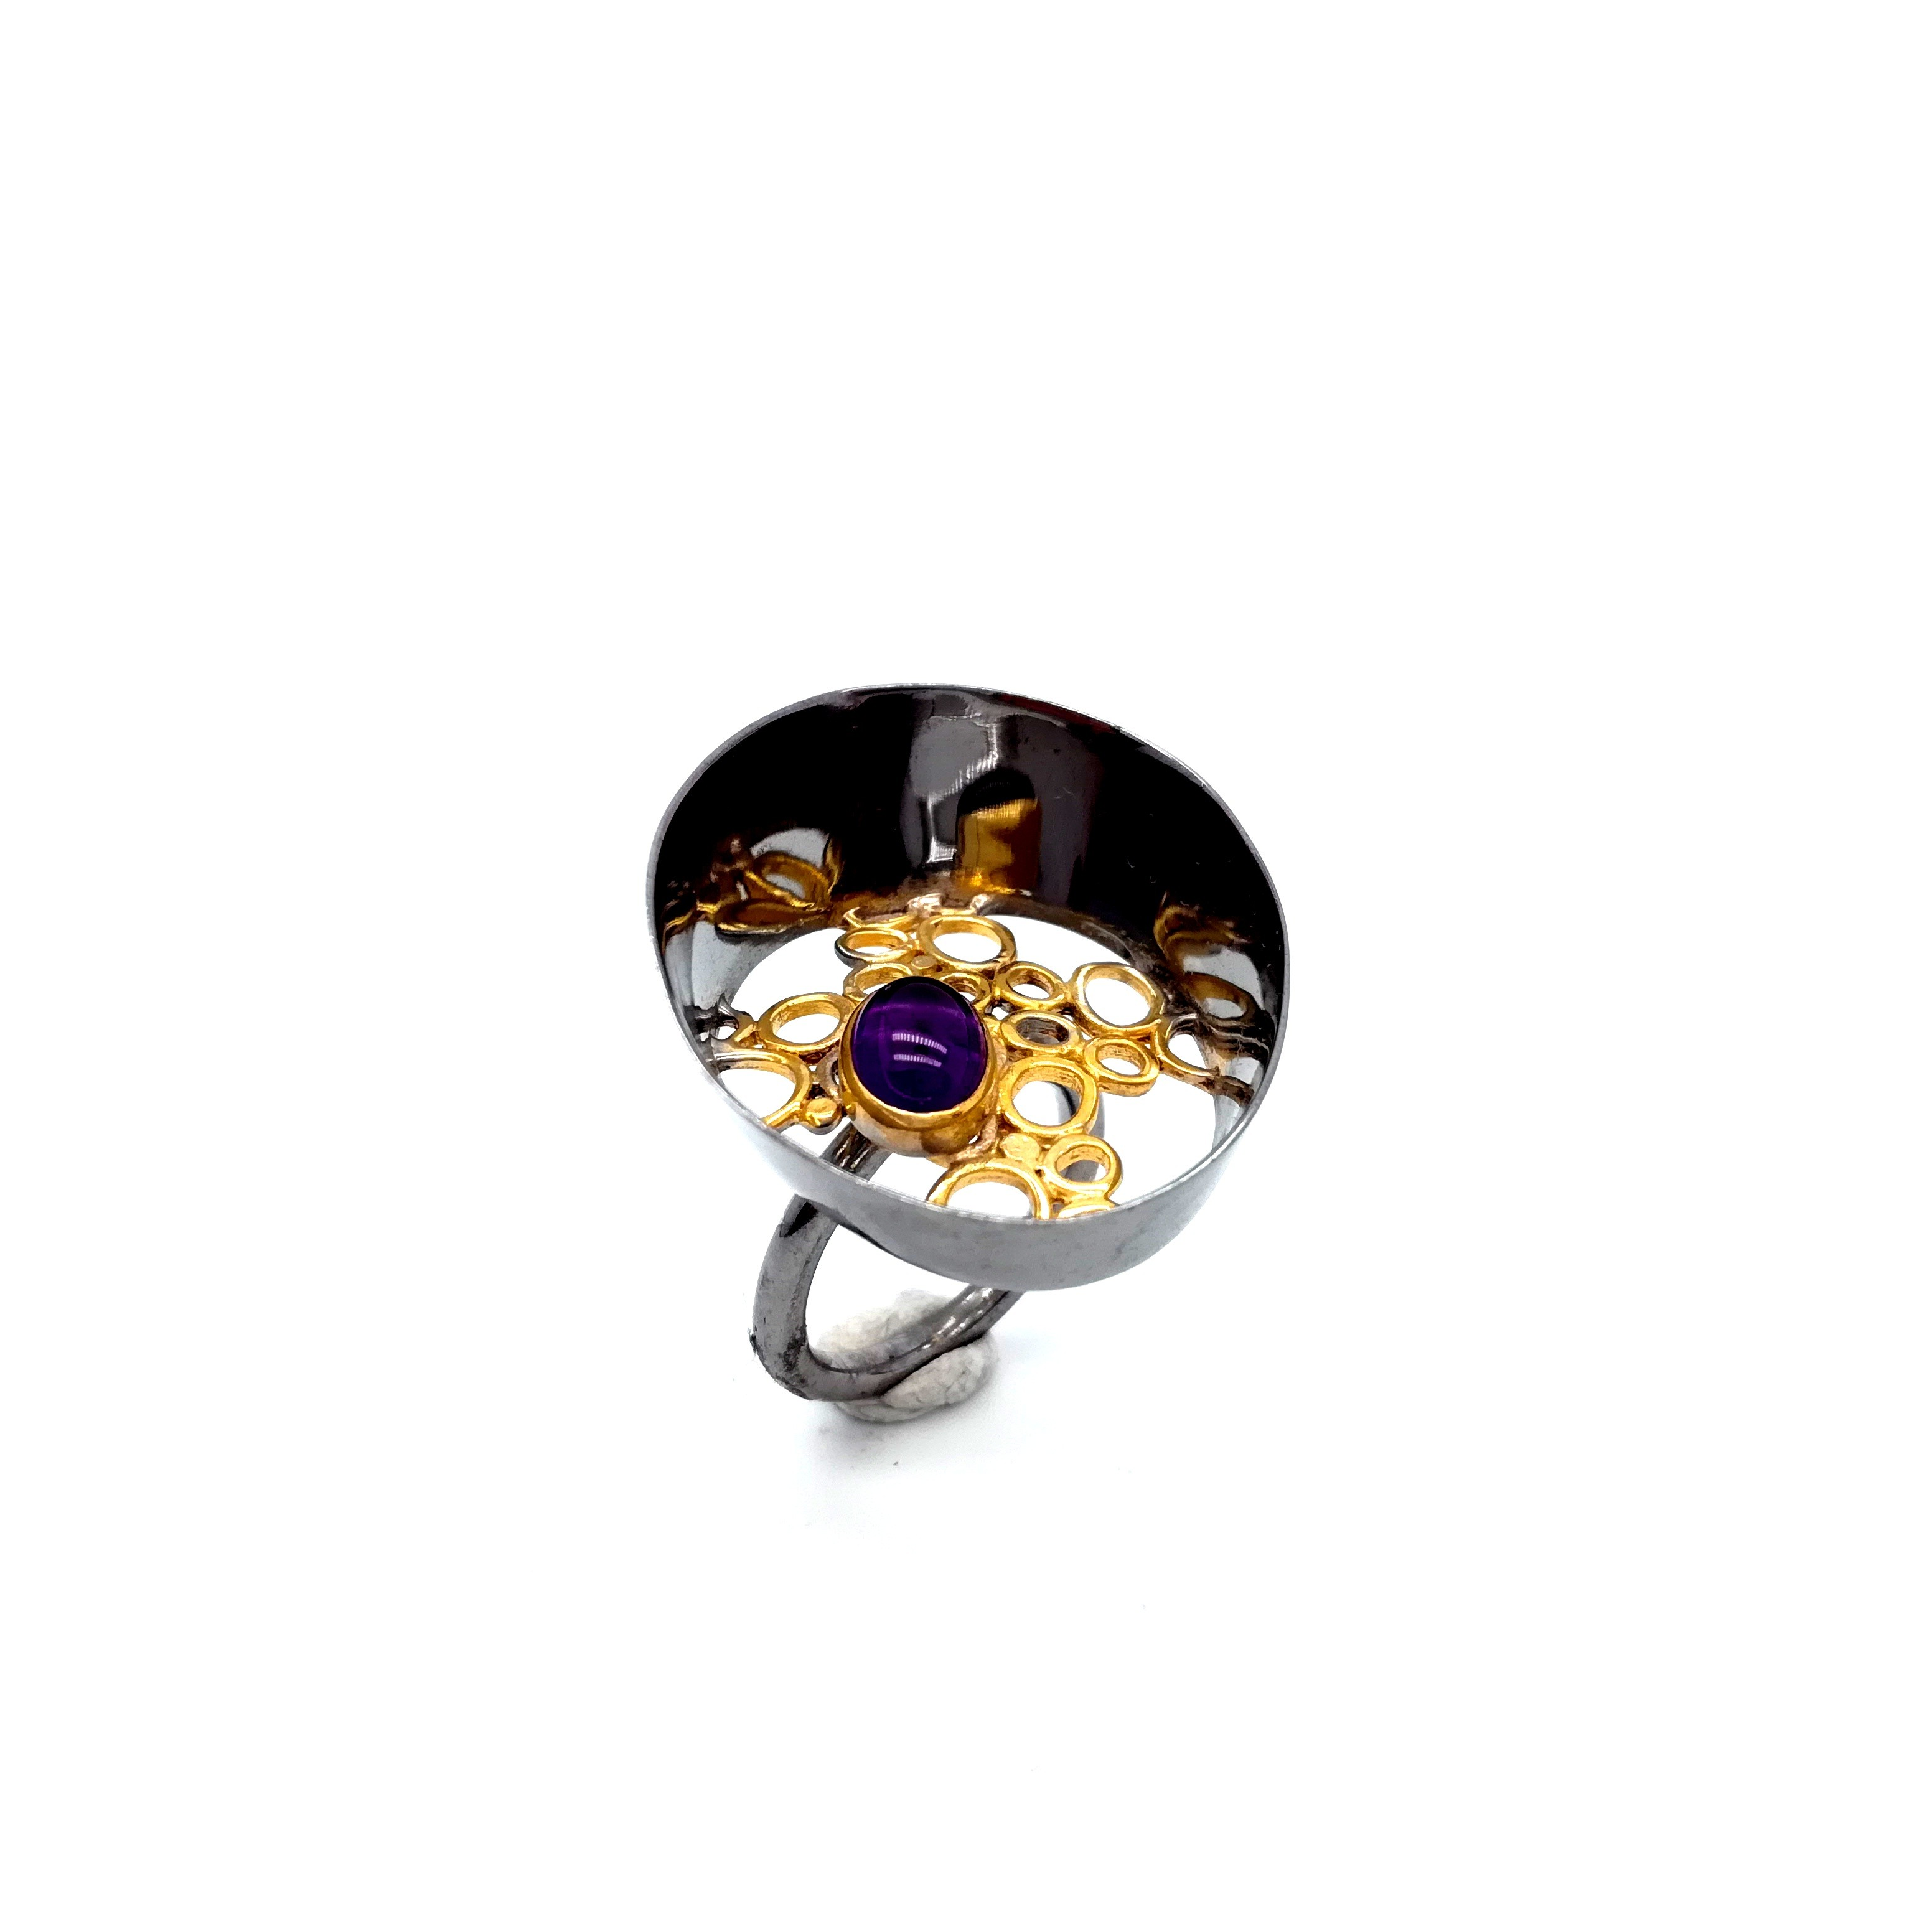 Silver ring 925 black rhodium and gold plated with semiprecious stones